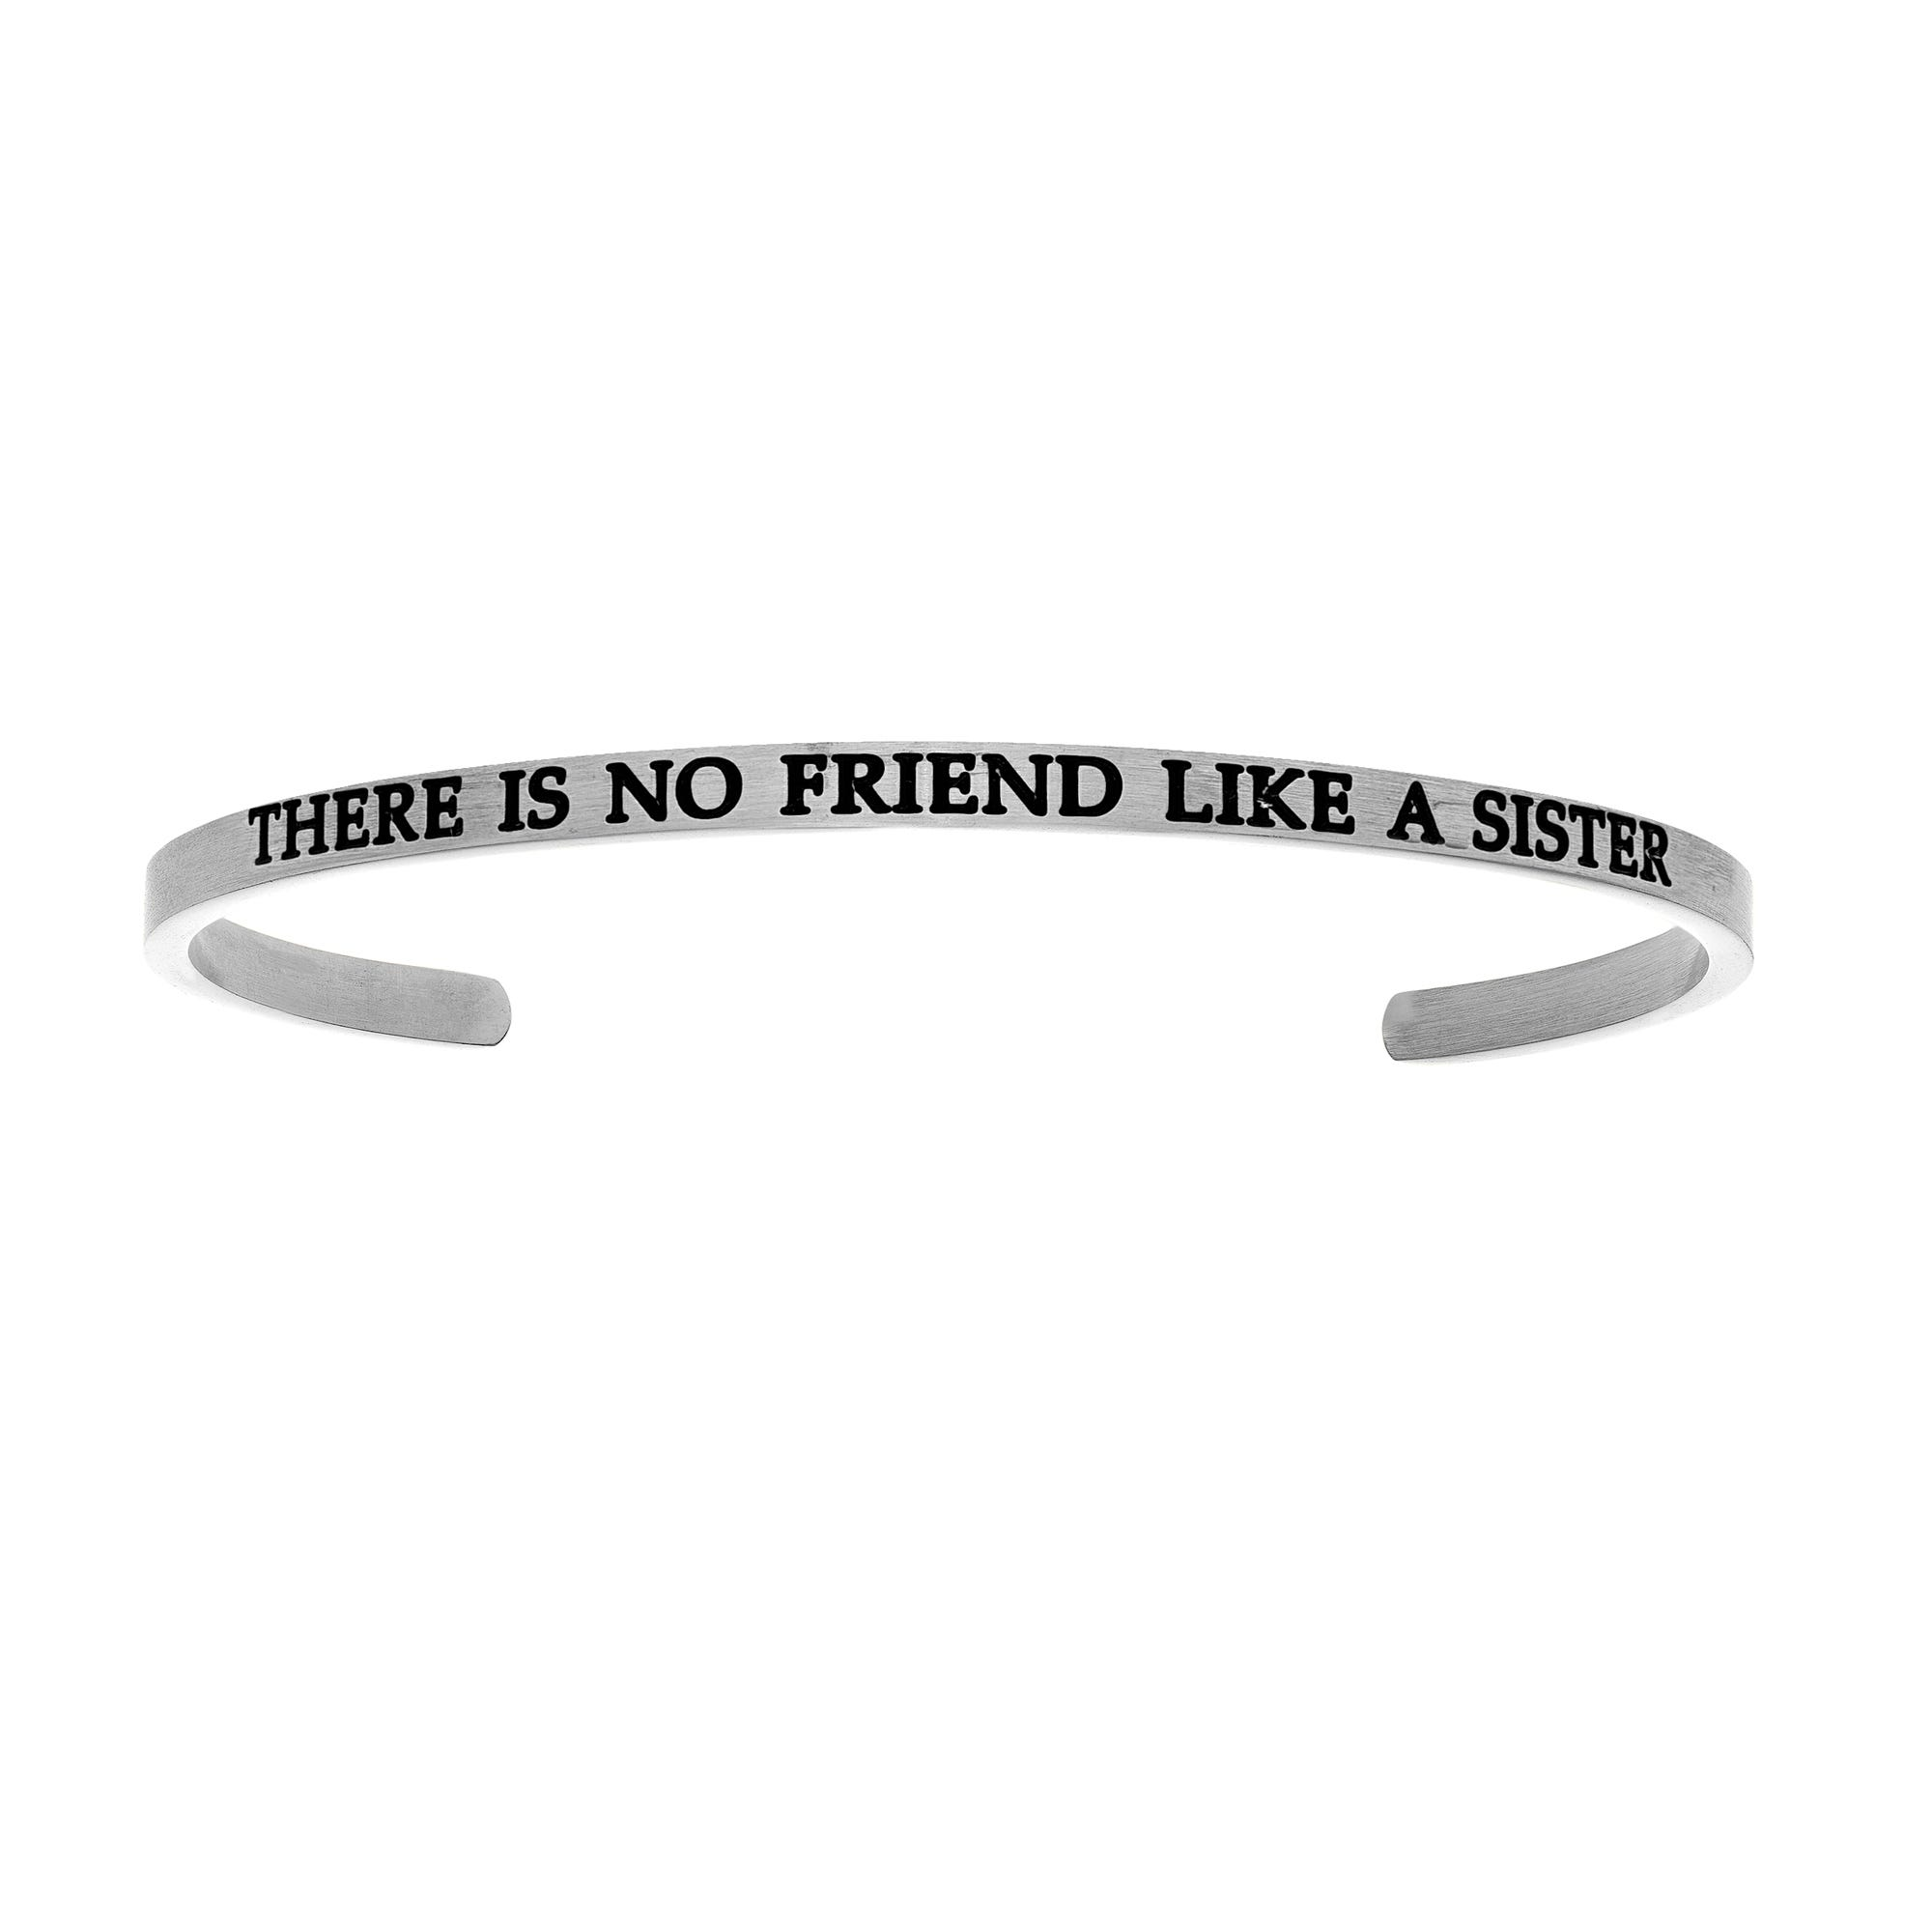 There Is No Friend Like A Sister. Intuitions Cuff Bracelet in White Stainless Steel